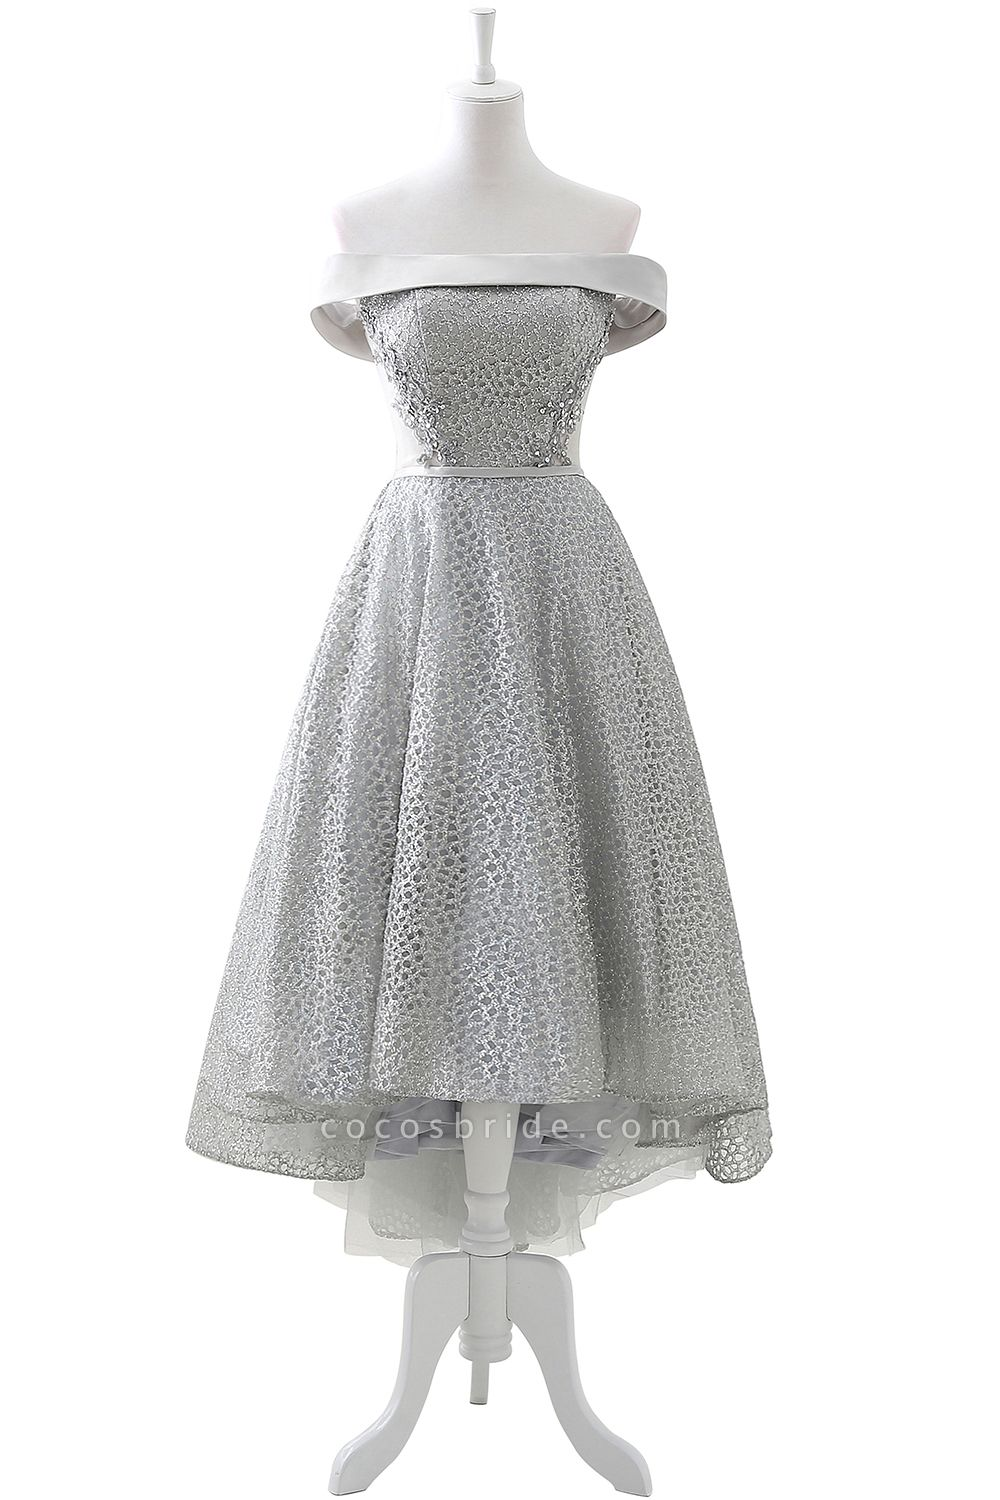 ANGELA   A-line Short Sequins Lace up Homecoming Dress With Beading